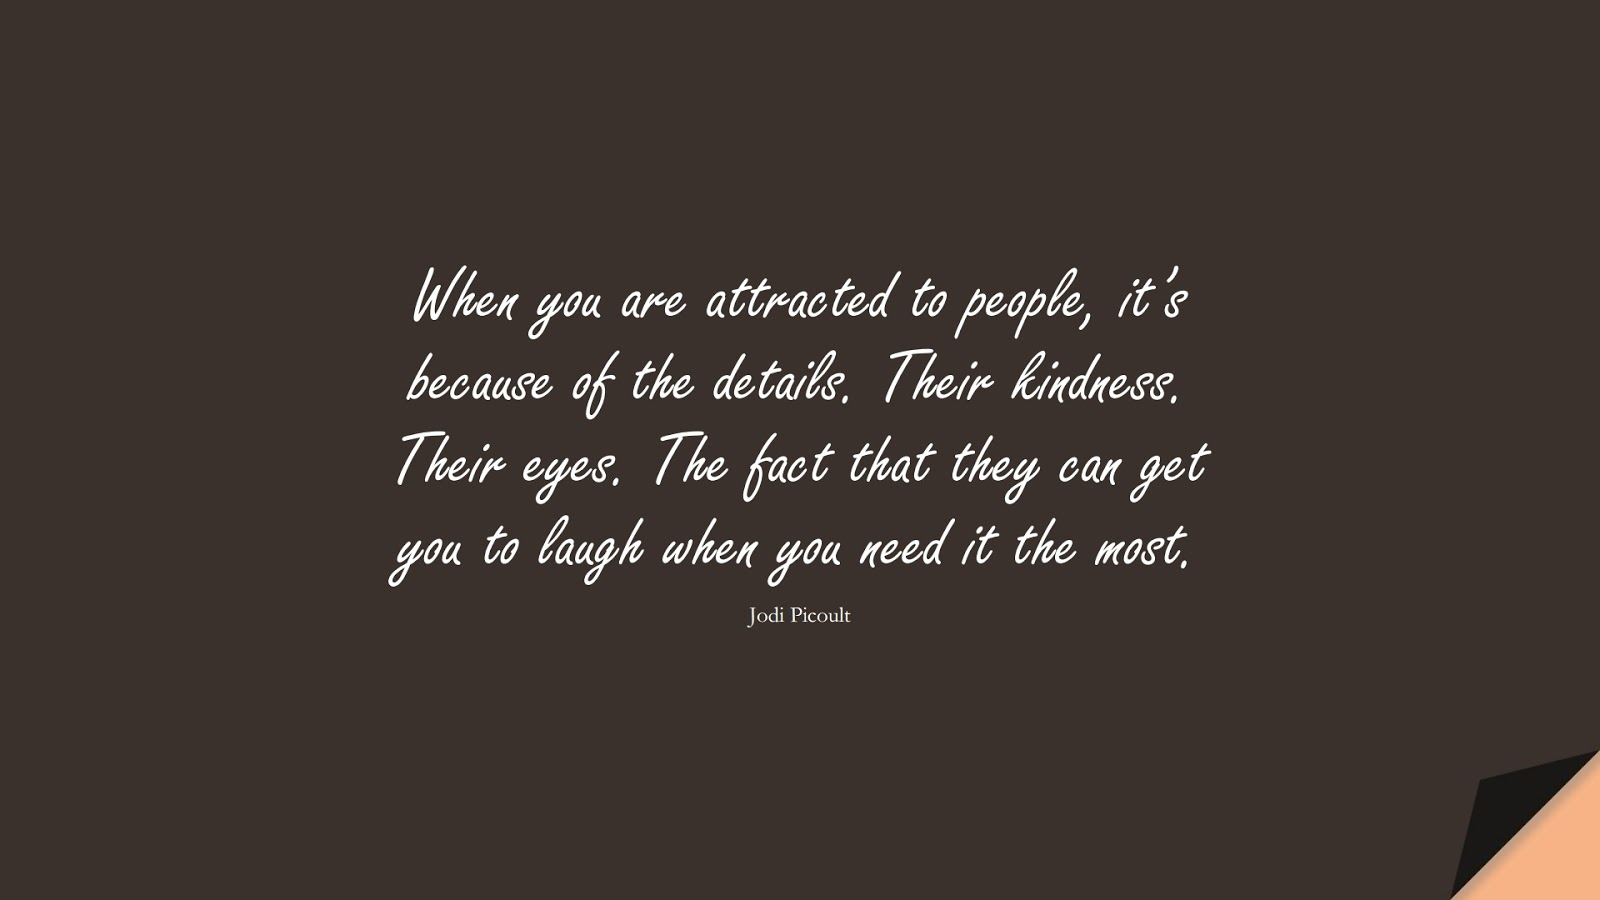 When you are attracted to people, it's because of the details. Their kindness. Their eyes. The fact that they can get you to laugh when you need it the most. (Jodi Picoult);  #RelationshipQuotes